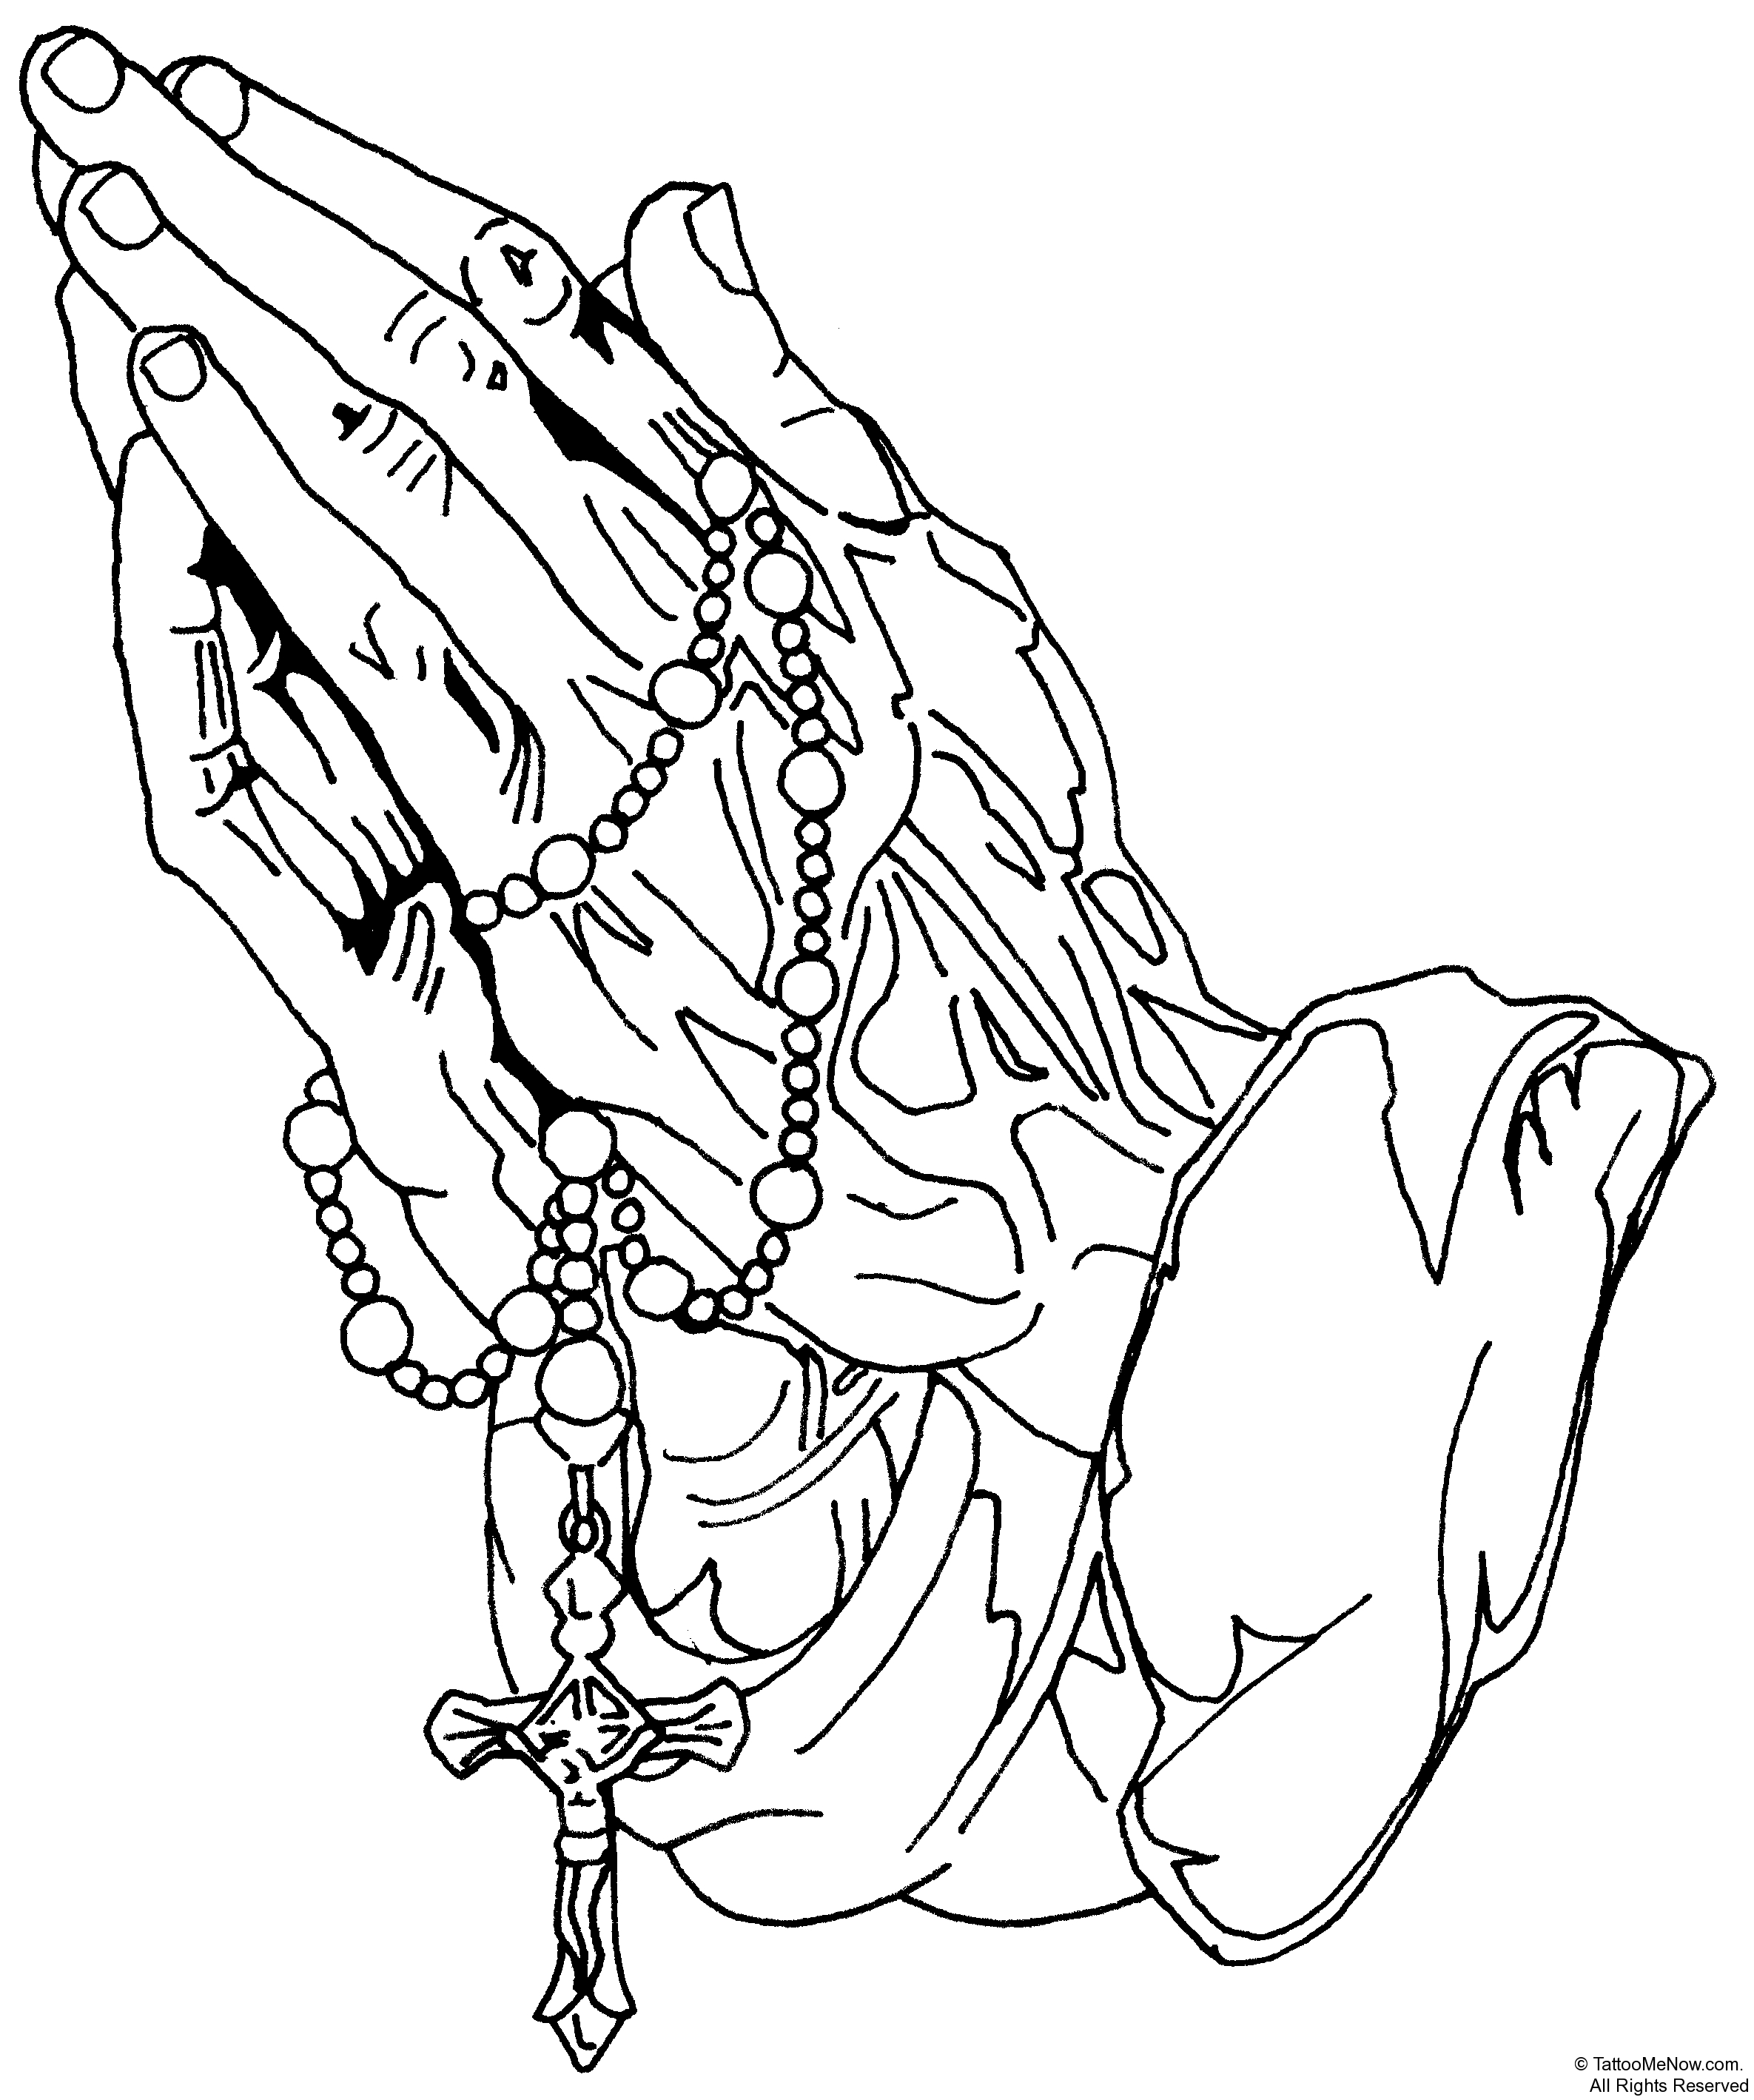 2370x2837 Messier Objects In Drawings Of Baby Plus Praying Hands Picture